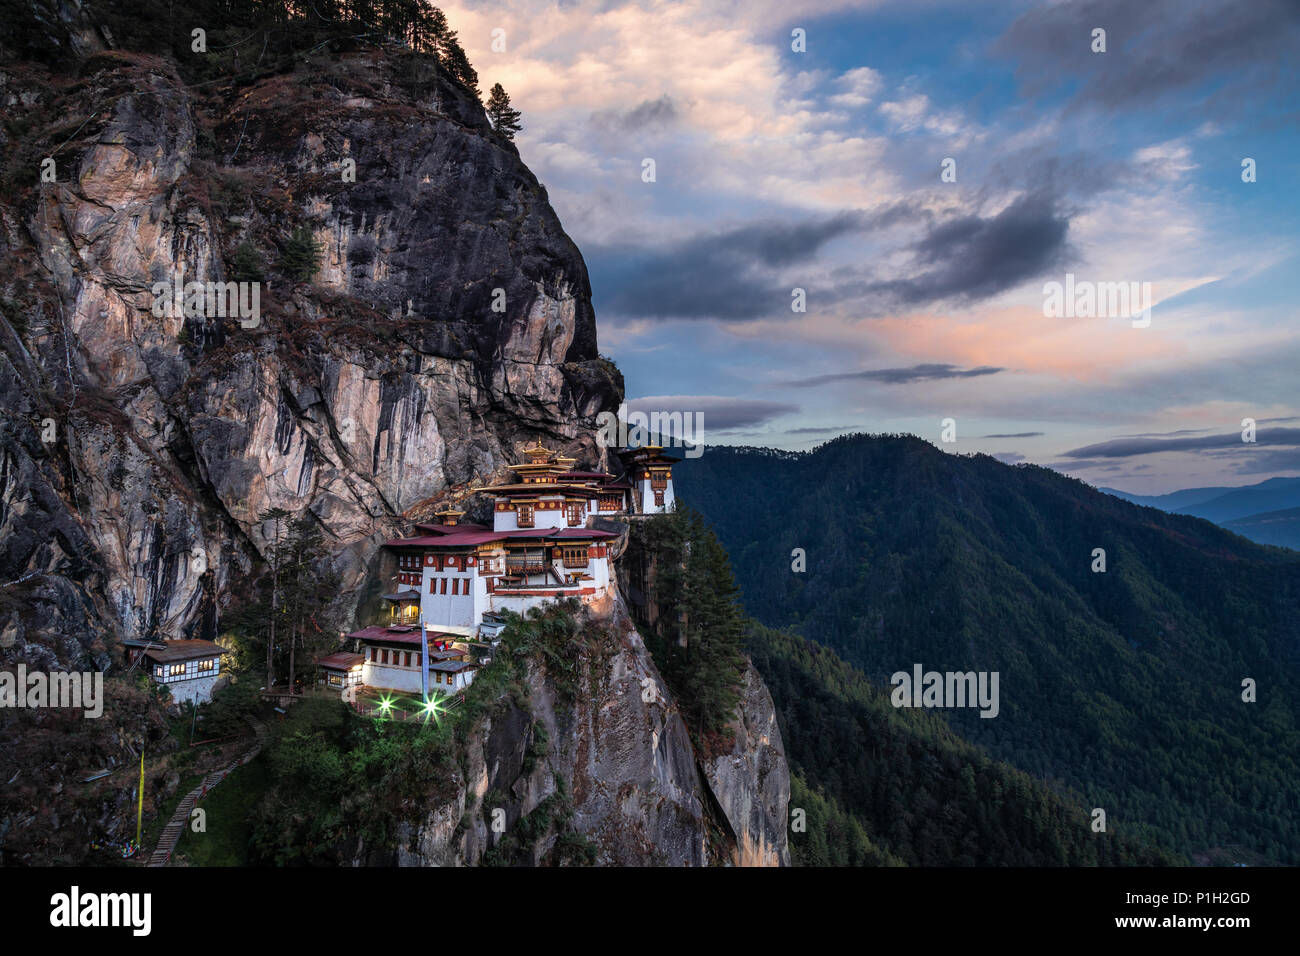 The famous Tiger's Nest monastery of Paro Taktsang at sunset in Bhutan - Stock Image